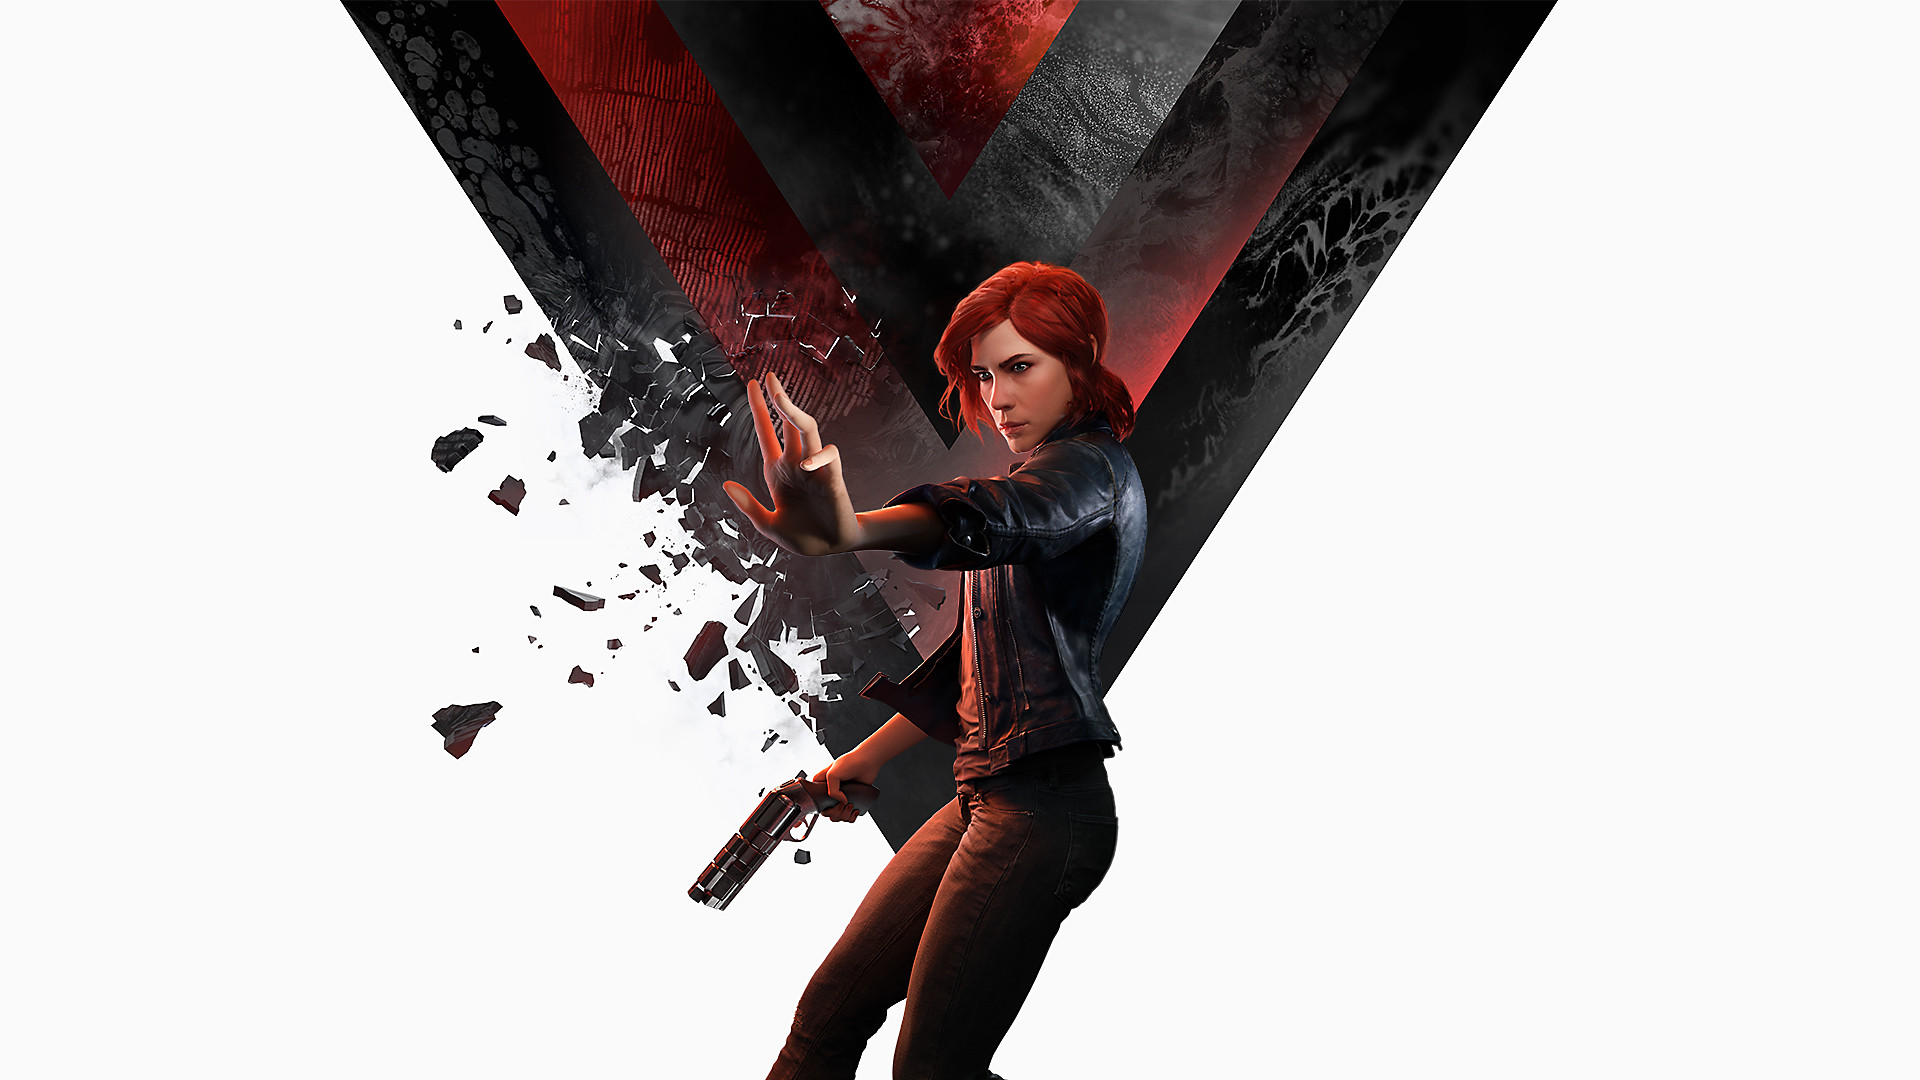 Remedy Entertainment Lowers The PC System Requirements For Upcoming Title Control